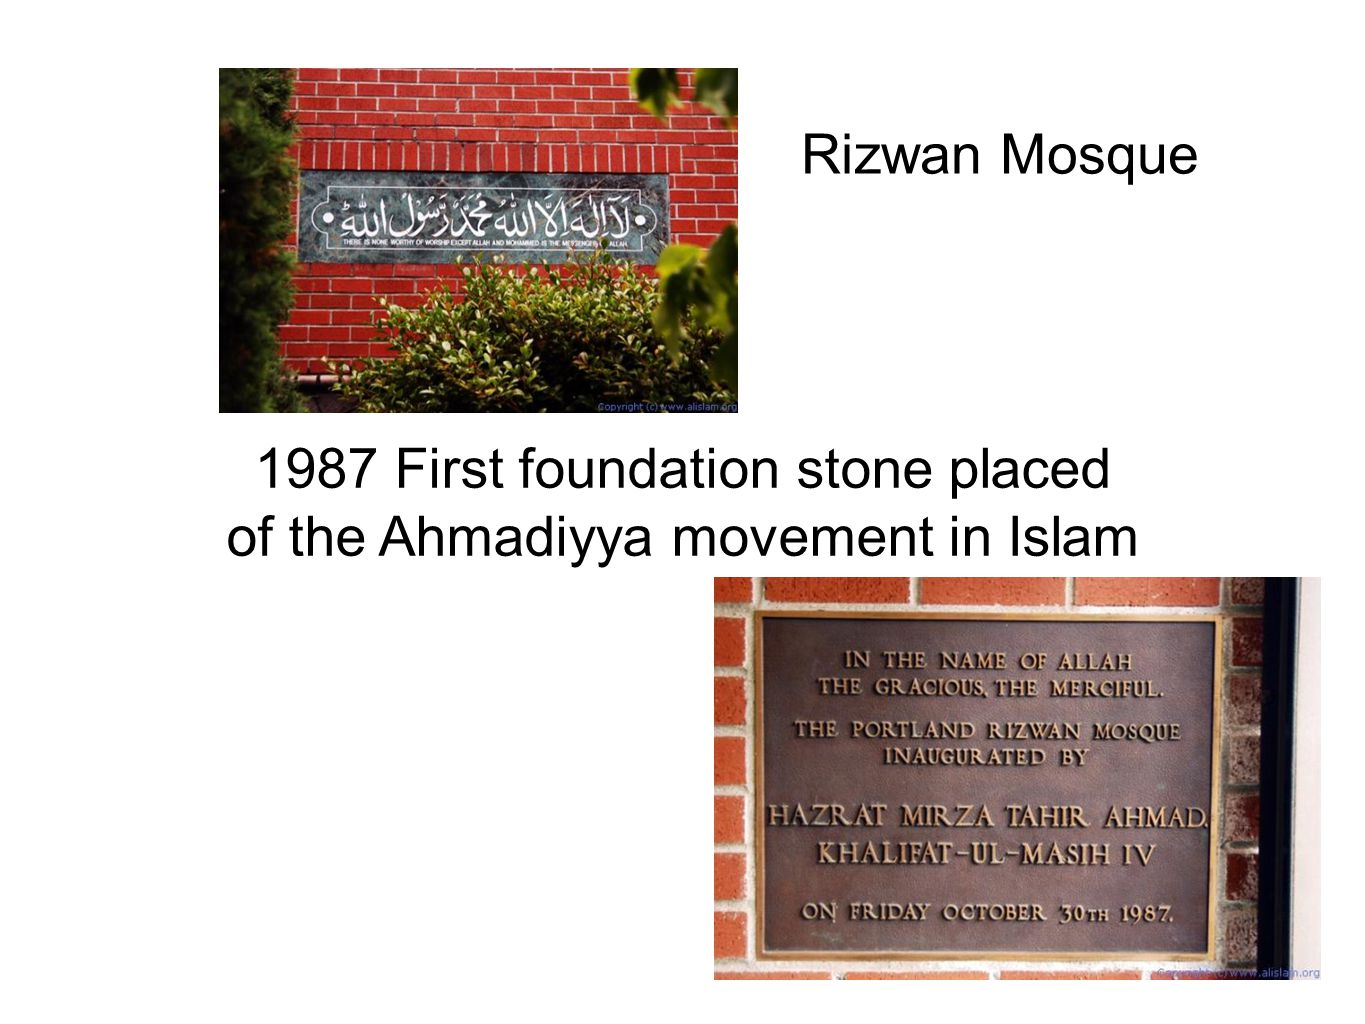 Rizwan Mosque 1987 First foundation stone placed of the Ahmadiyya movement in Islam